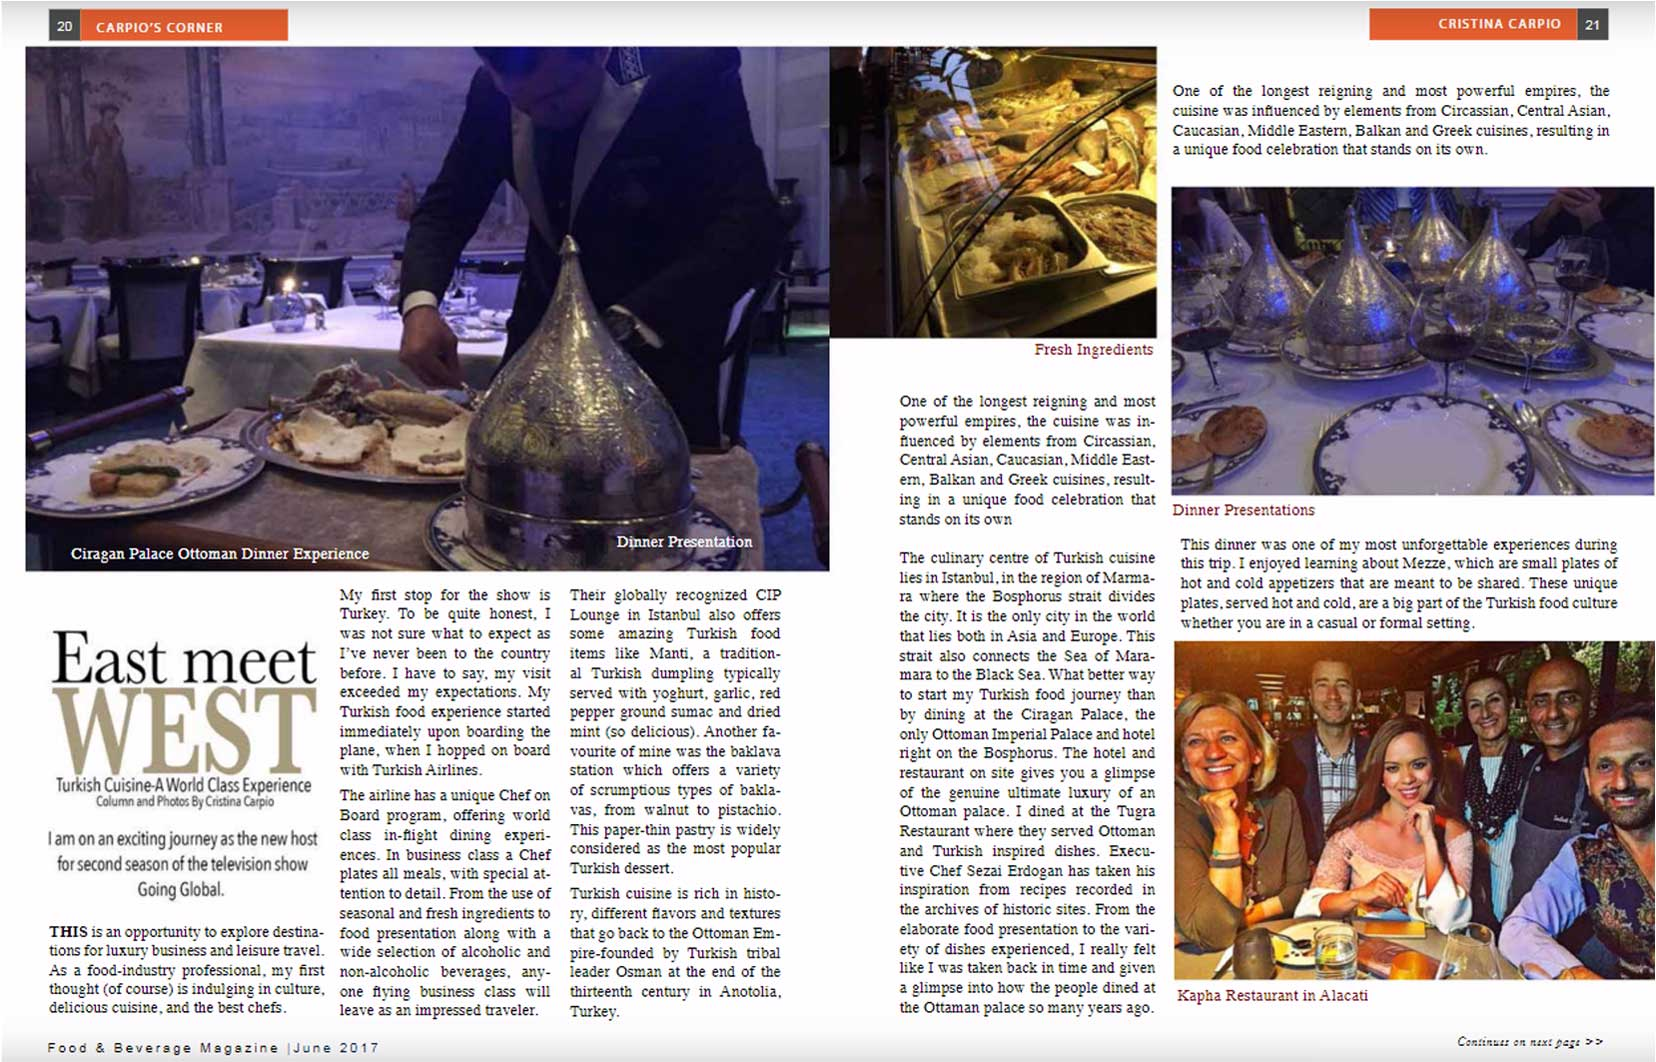 Food & Beverage Magazine June 2017 East Meet West, Cristina Carpio by Going Global TV Cover Istanbul